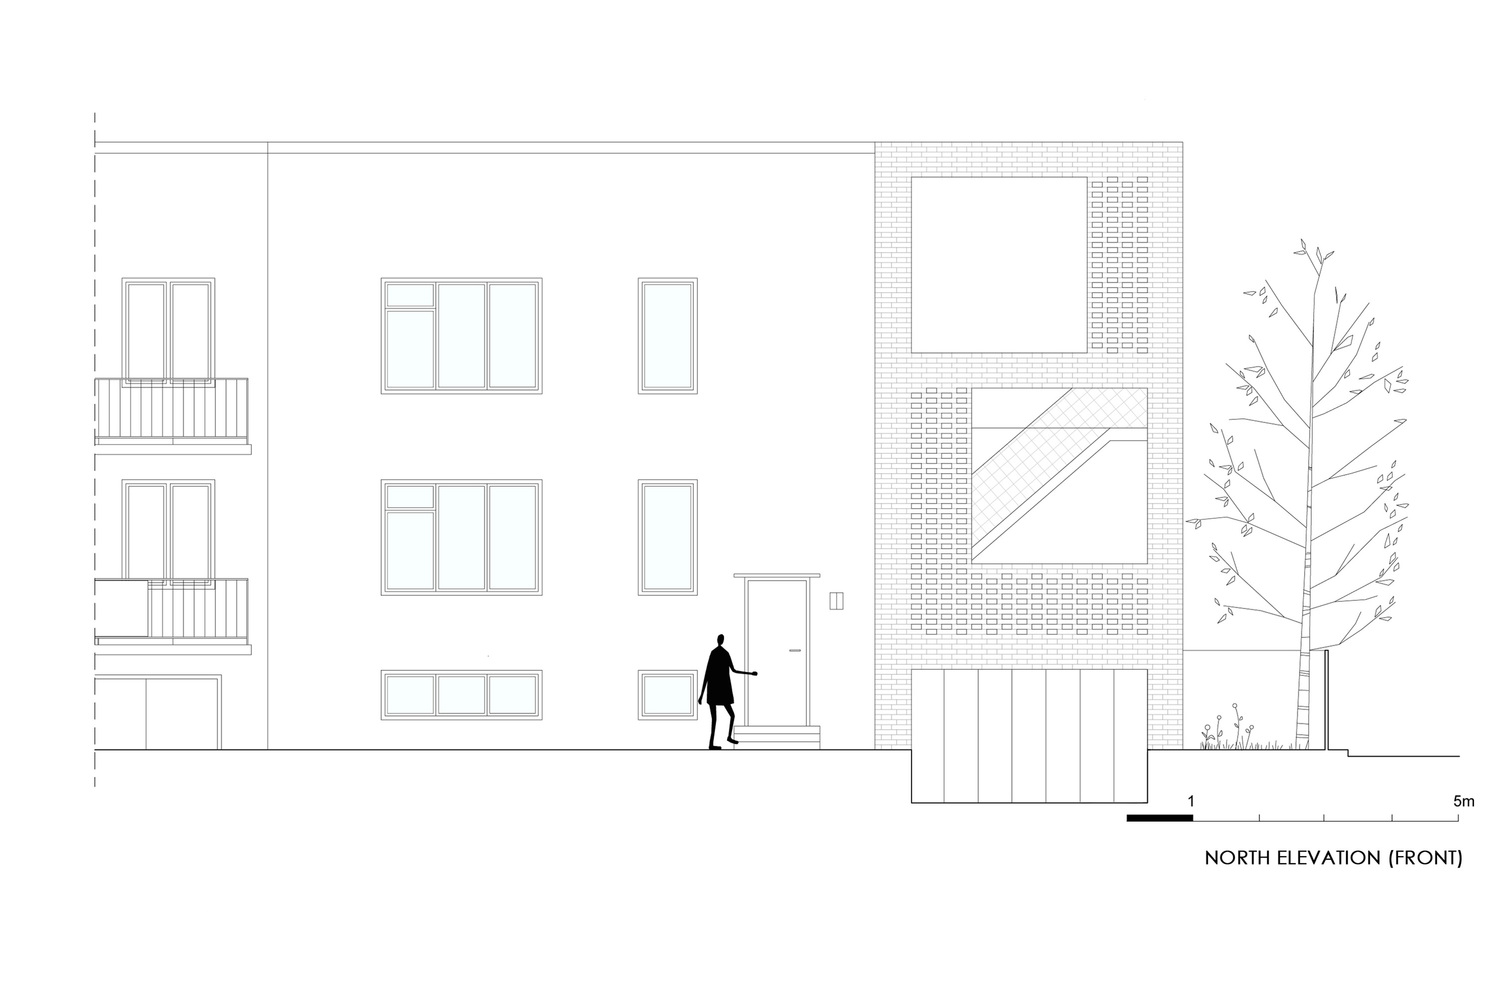 House_for_W_by_MFRMGR_northfacade.jpg